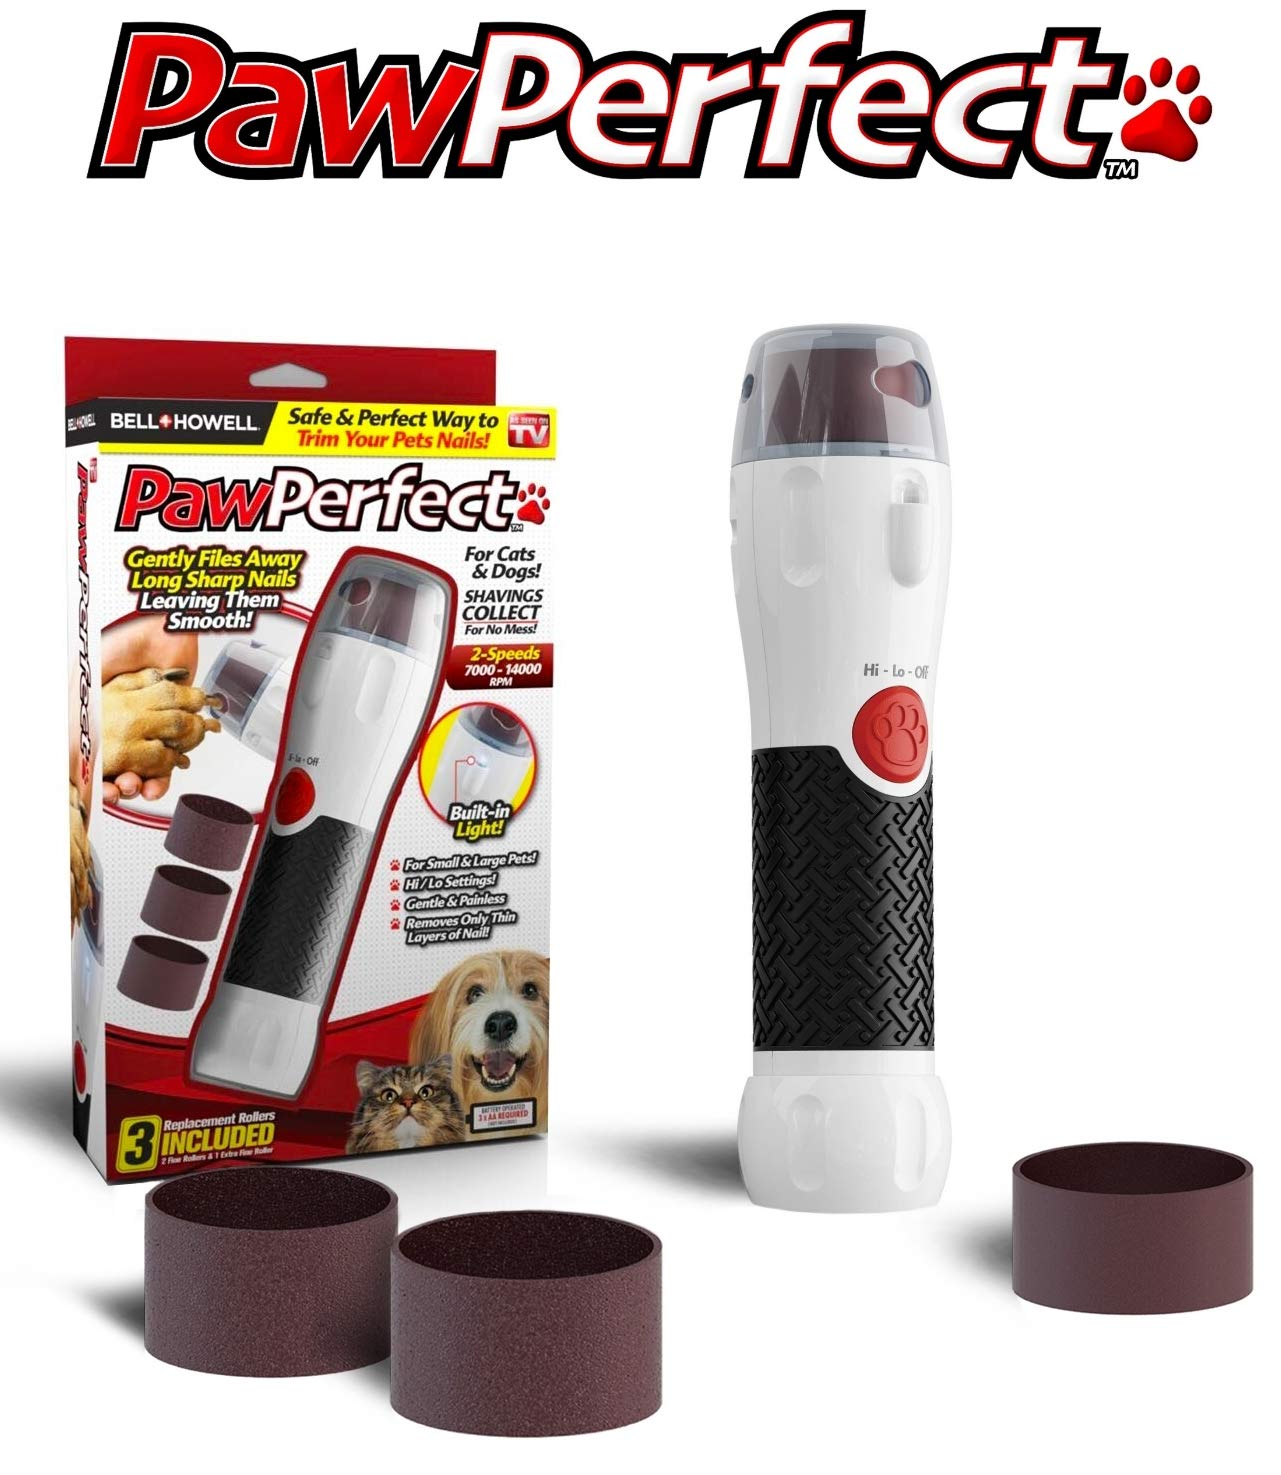 Bell + Howell PAWPERFECT Pet Nail Rotating File with 7000-14,000 RPM's for Dogs, Cats, and Other Small Animals As Seen On TV